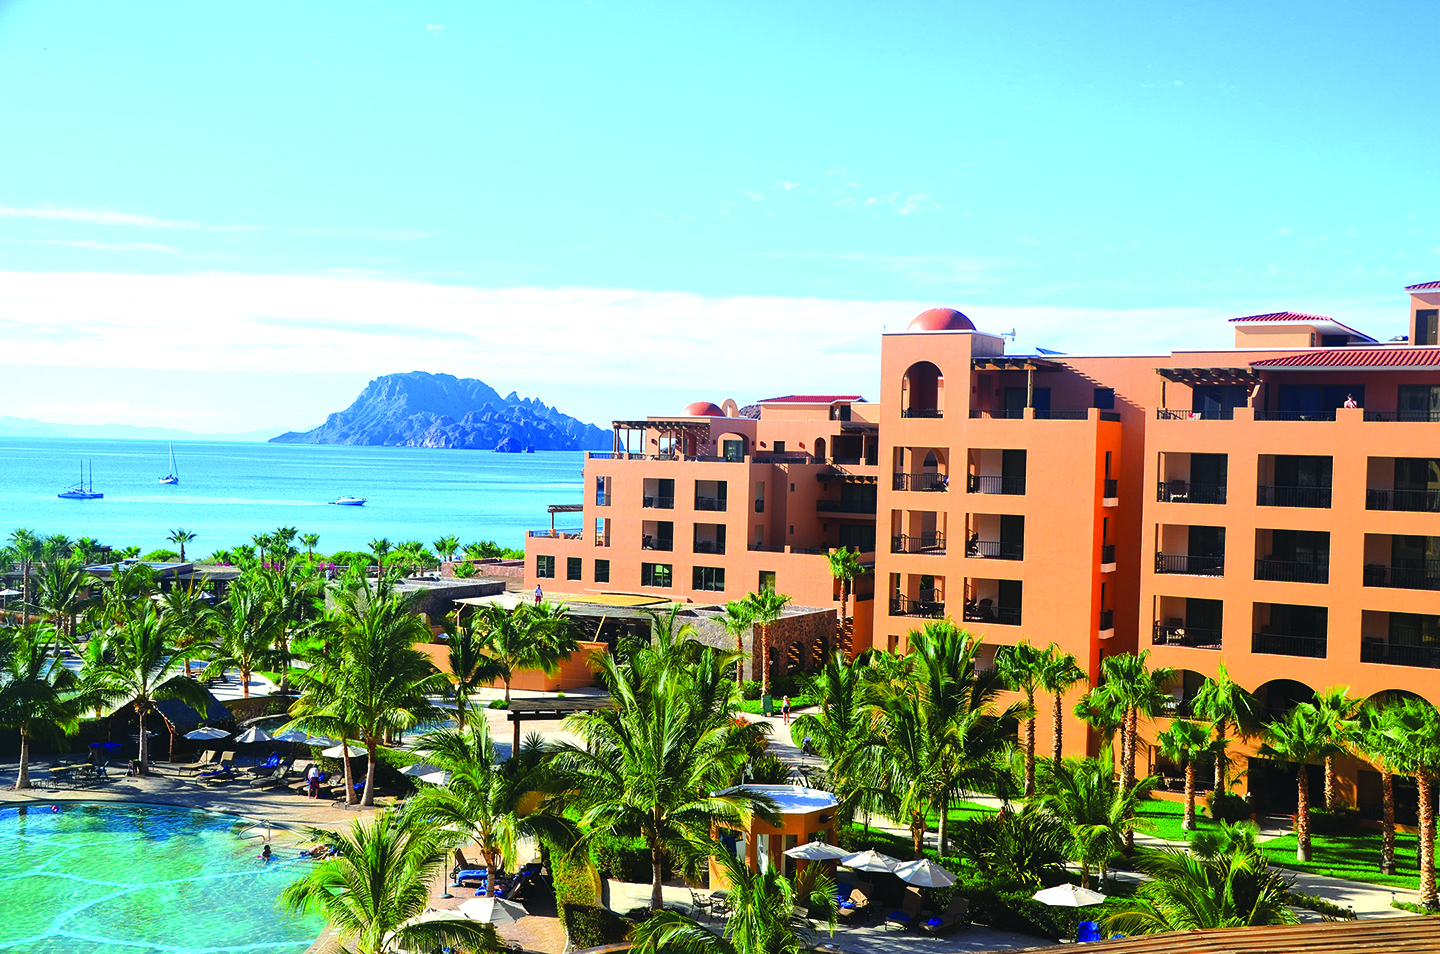 "All of the 181 rooms and suites at Villa del Palmar Beach Resort & Spa in Baja have ocean views and kitchens. The Sierra de la Giganta mountain range provides a dramatic backdrop, and in the other direction, the hotel has a ringside seat on the Sea of Cortez. Jacques Cousteau, who spent time in the area, called it the ""aquarium of the world"" because of the 900 species of fish that inhabit the waters. Photo by Jerry Ondash"